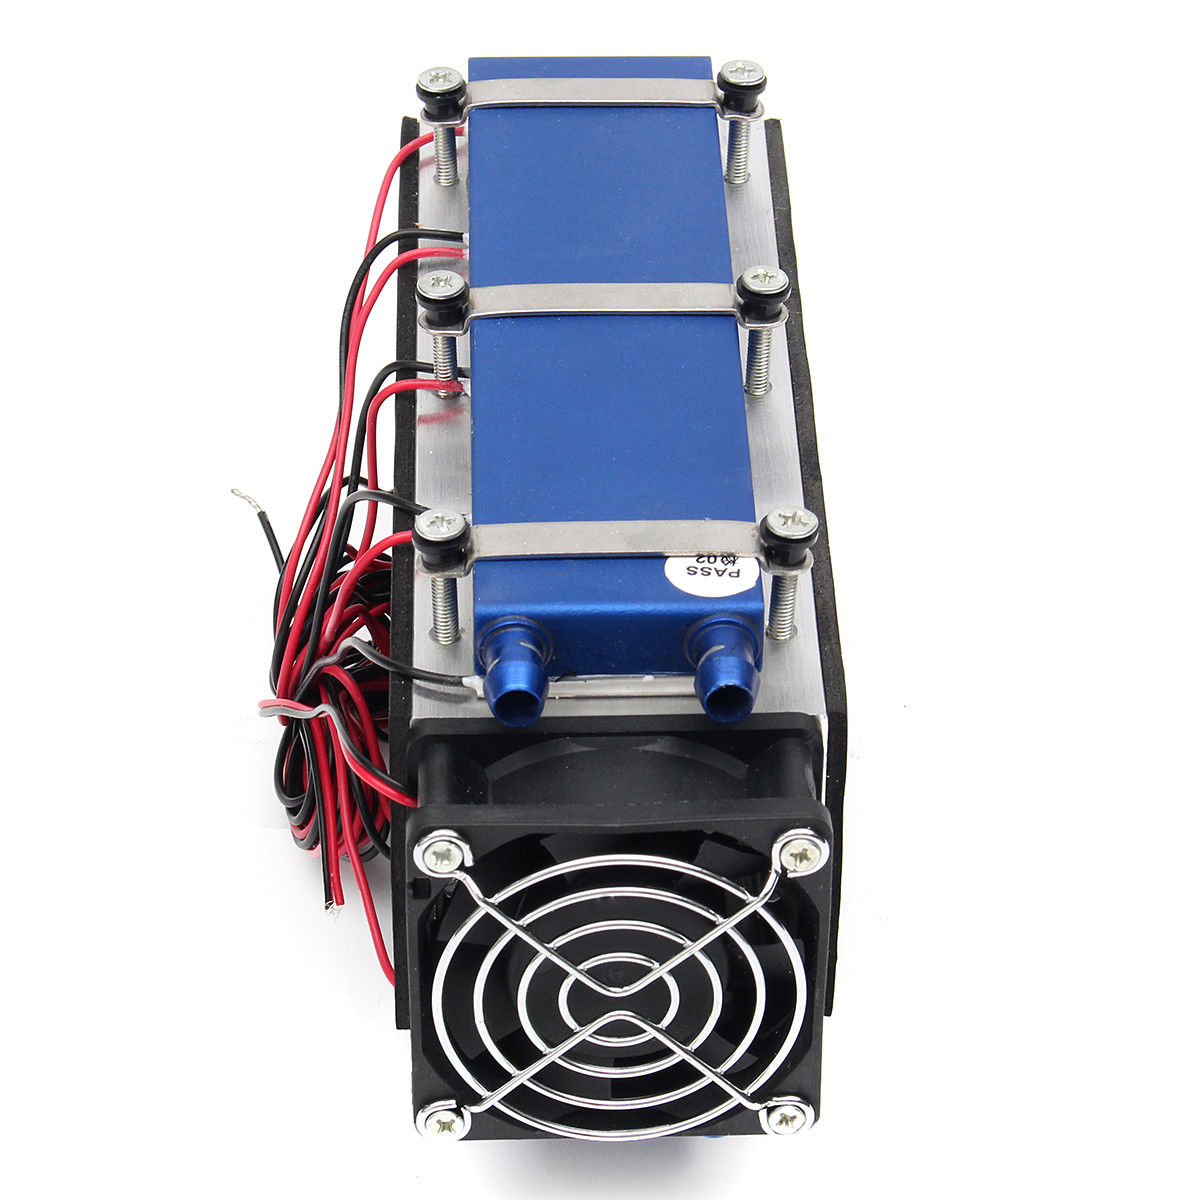 Thermoelectric Peltier Cooler 12V 576W 8-Chip TEC1-12706 DIY Refrigeration Air Cooling Device